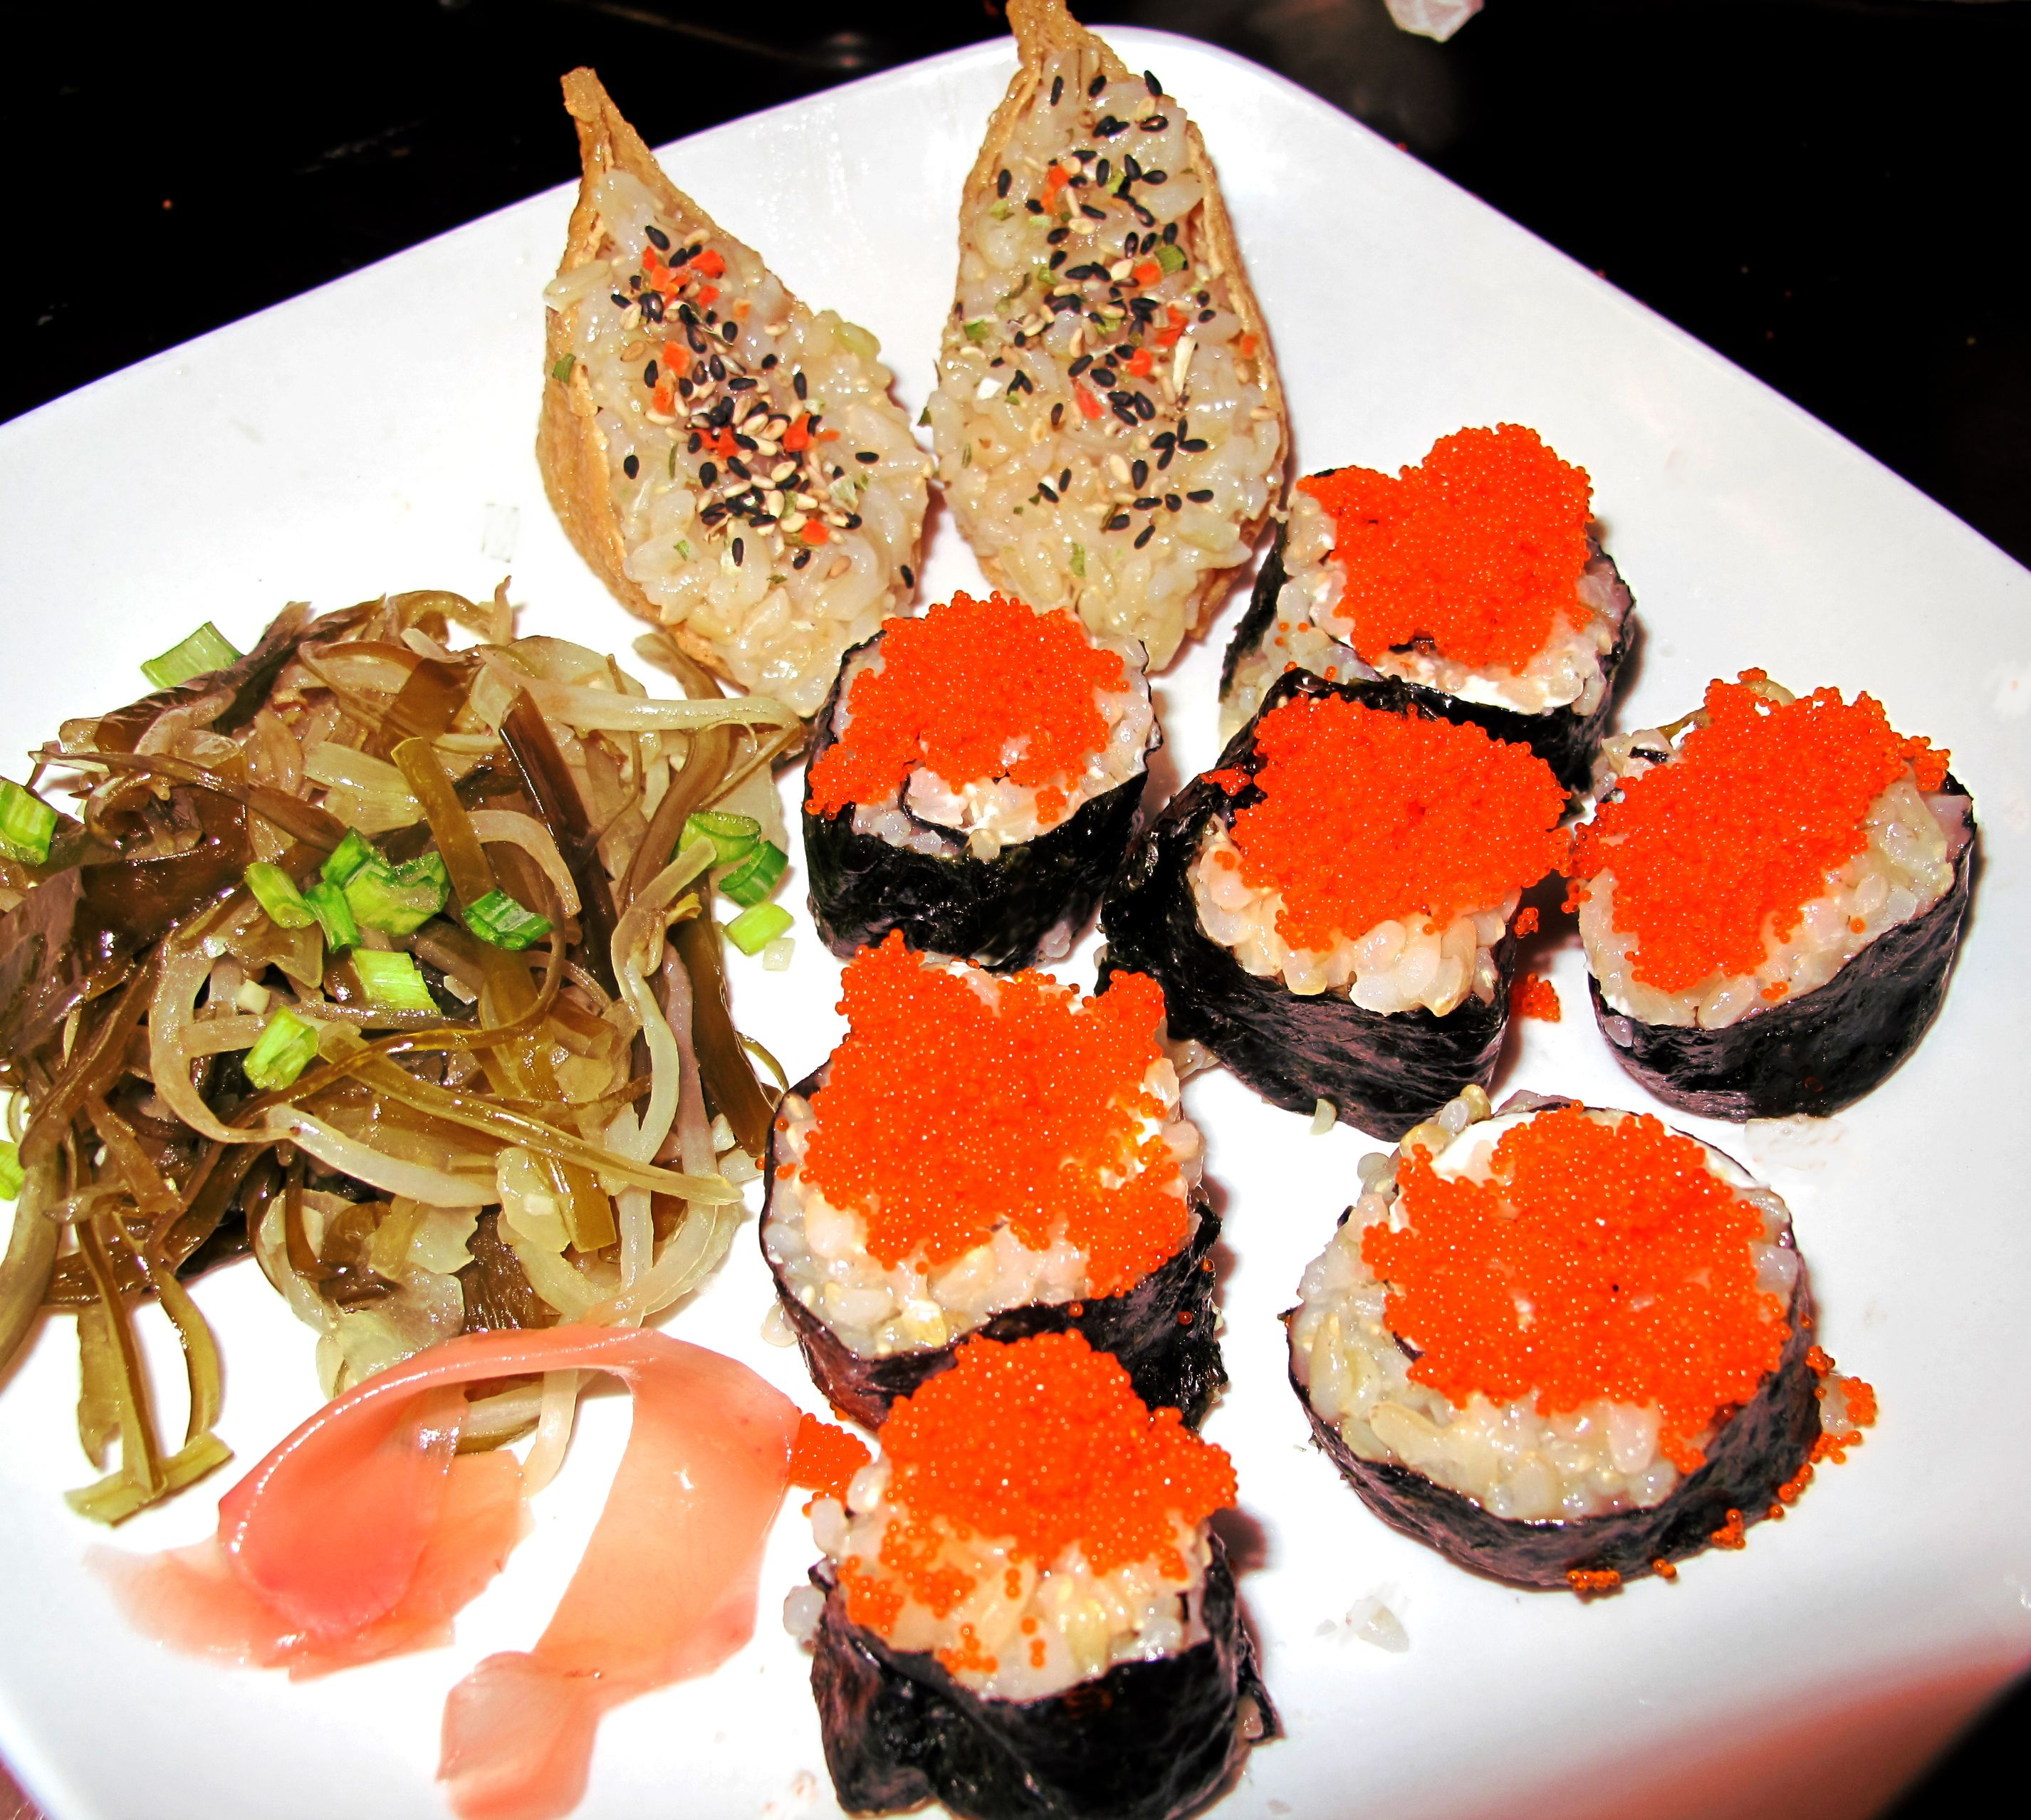 Sushi on a Shoestring Budget...make it at home.  For about $1.00/roll: Nori sheet, Sushi rice (steamed short grain rice with a syrup of rice vinegar and sugar stirred in) and select your fillings or toppings.  This roll has cream cheese and topped with masago.